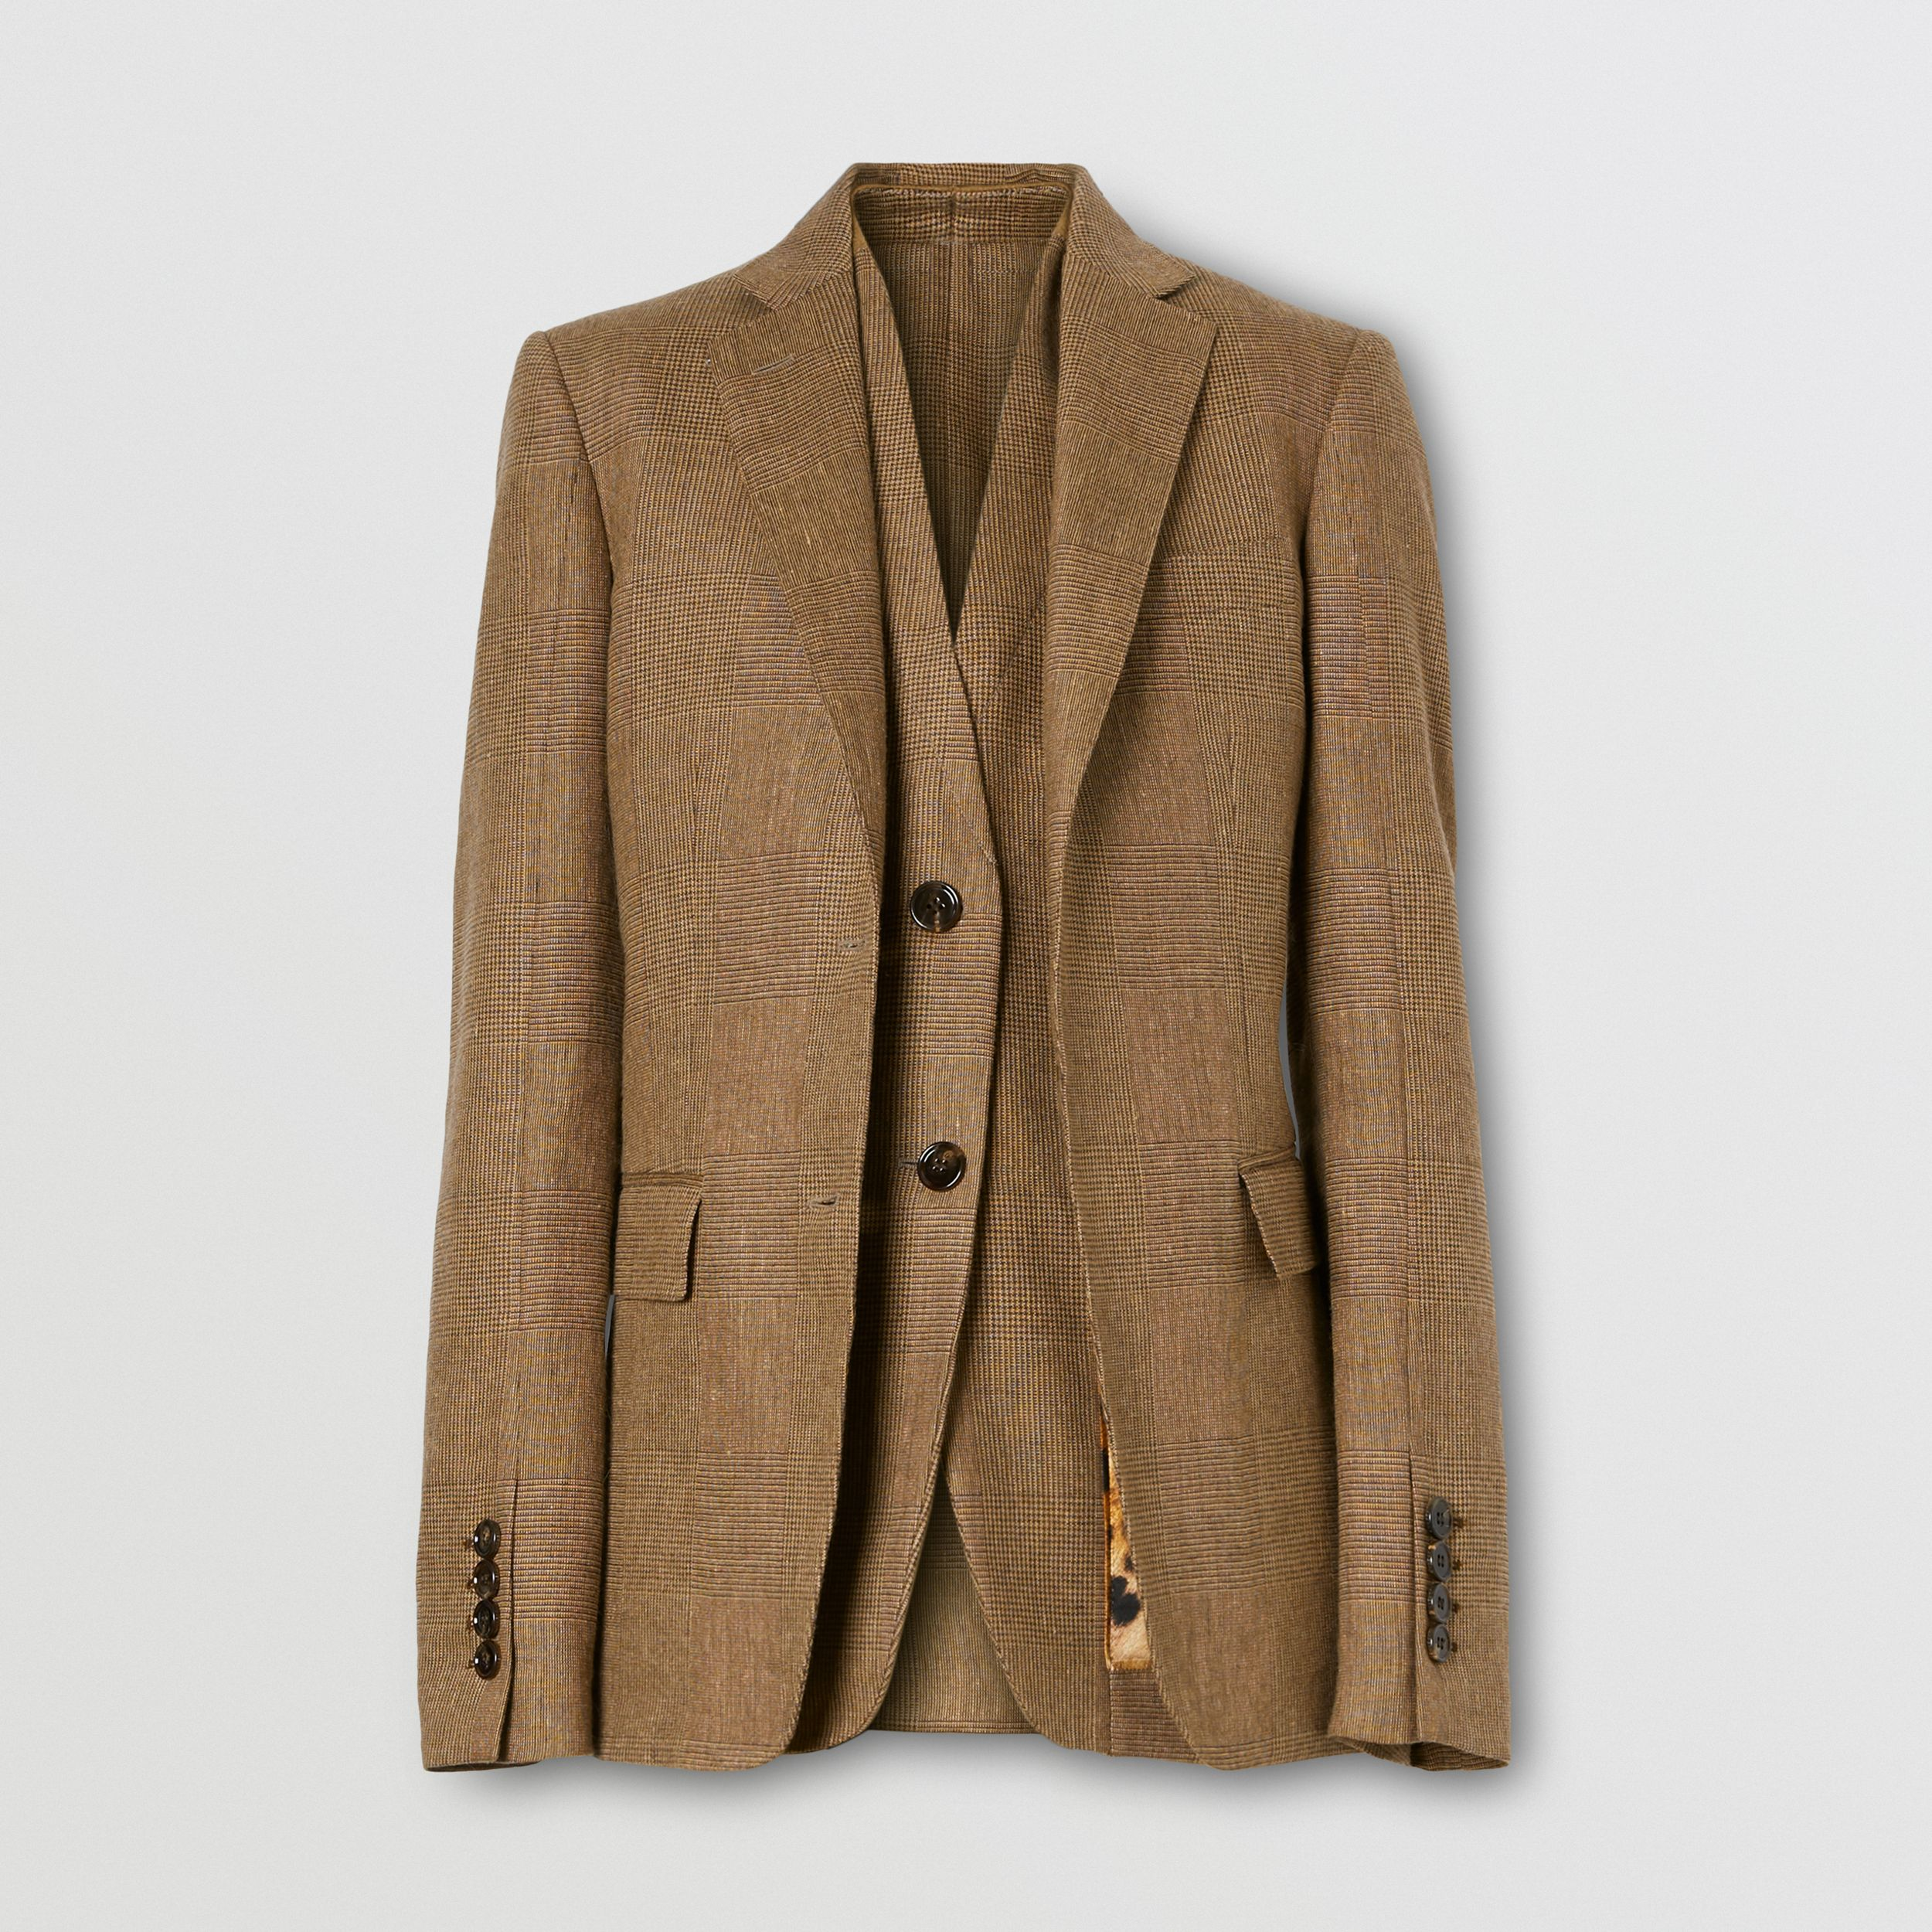 Linen Wool Cashmere Reconstructed Tailored Jacket in Brown - Women | Burberry - 4